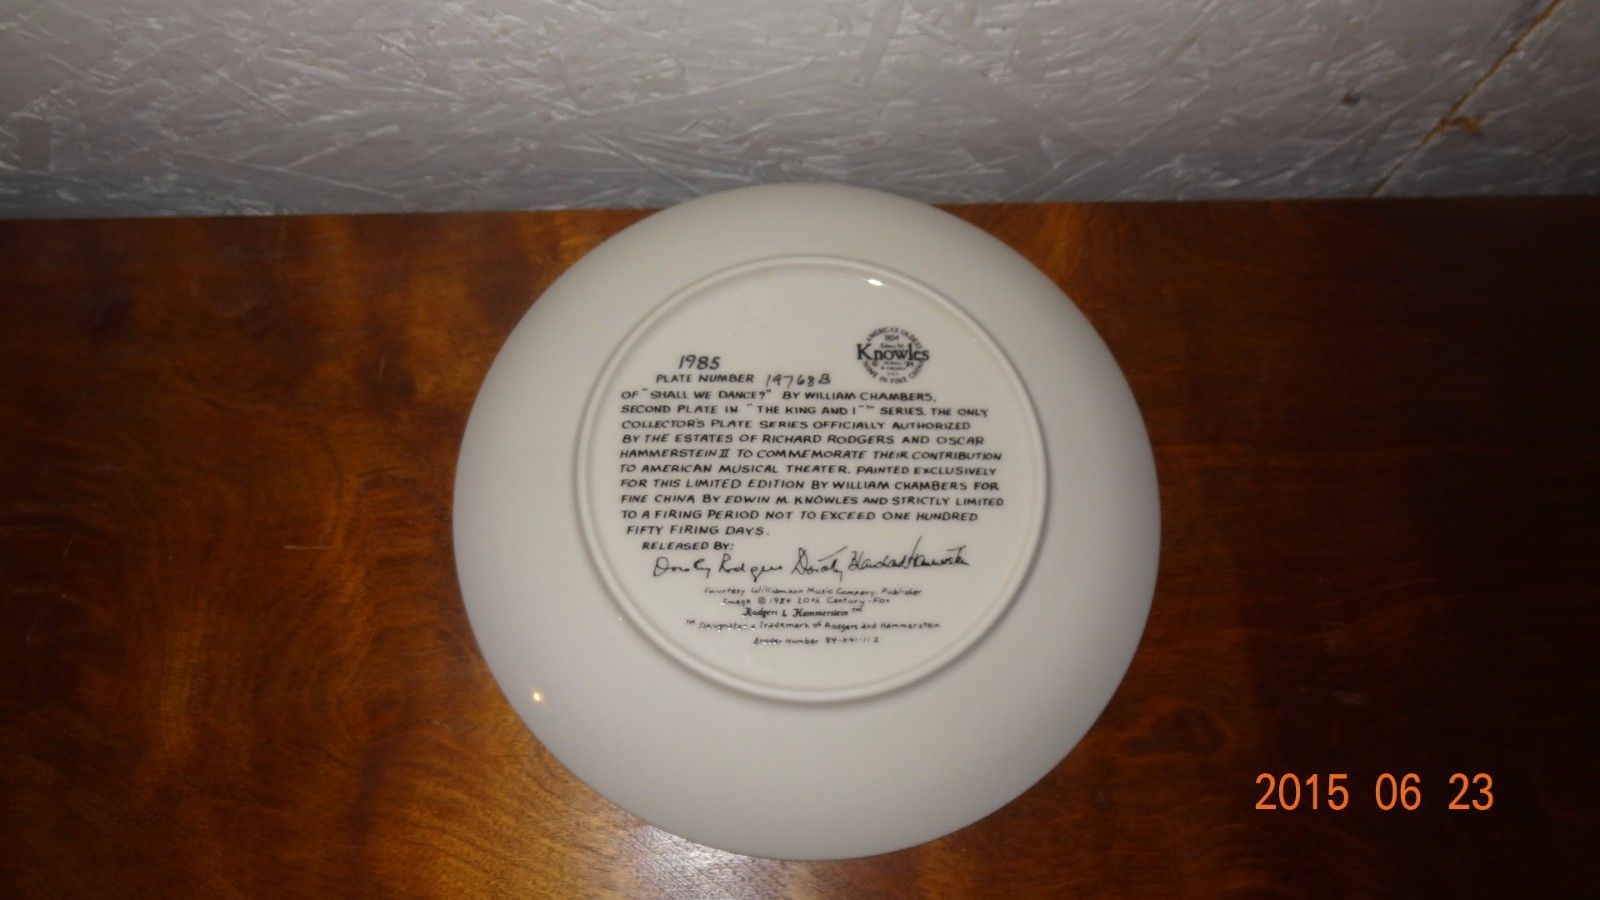 "The King and I "" Shall We Dance"" Knowles 1985 Collector's Plate Musical"